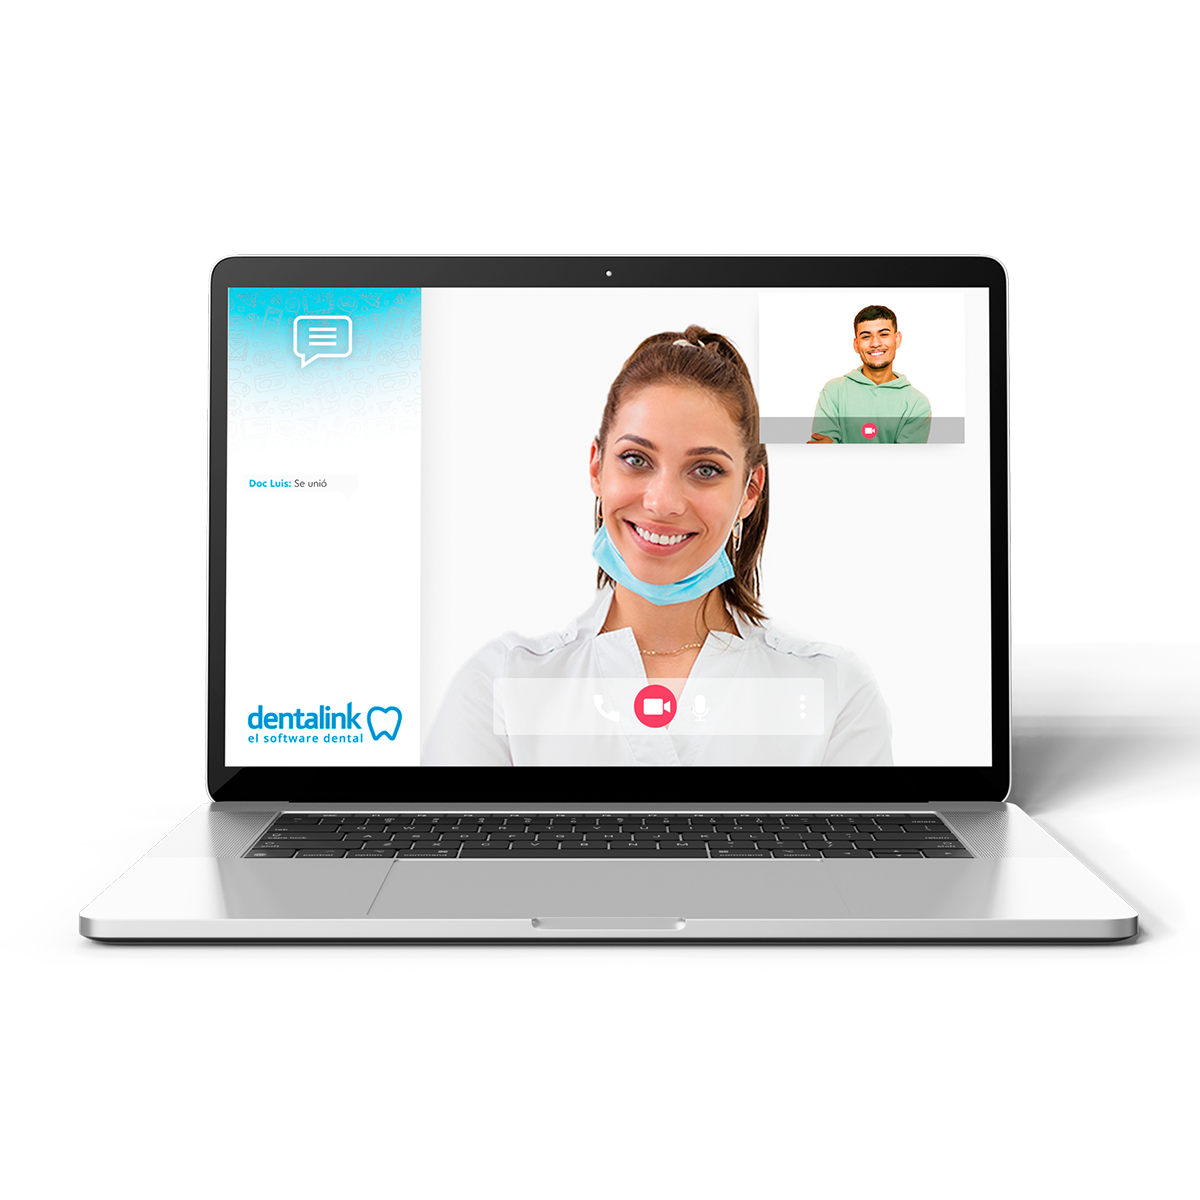 telemedicina video consulta software dentalink